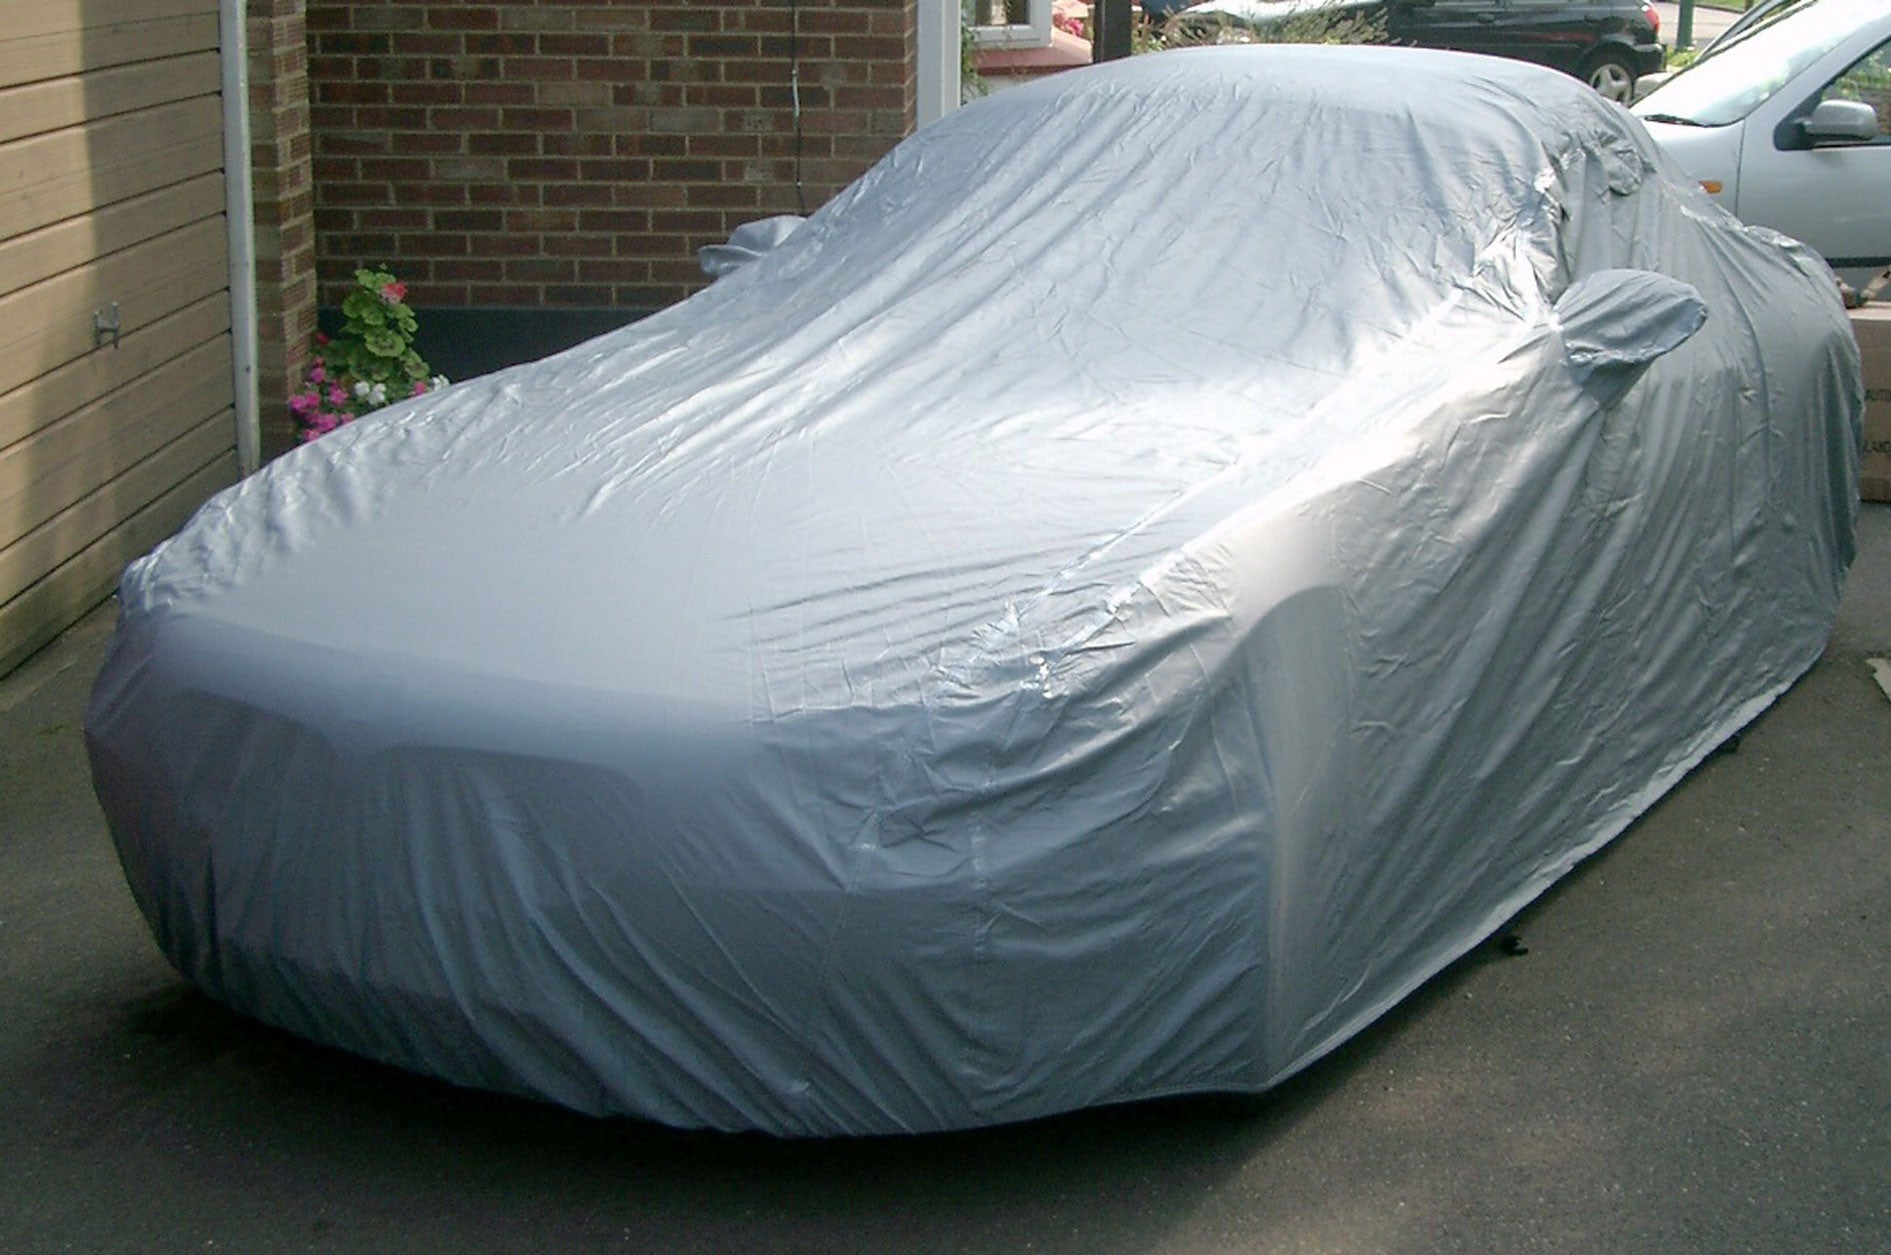 monsoon winter car covers for tvr quality bespoke and fitted car covers. Black Bedroom Furniture Sets. Home Design Ideas